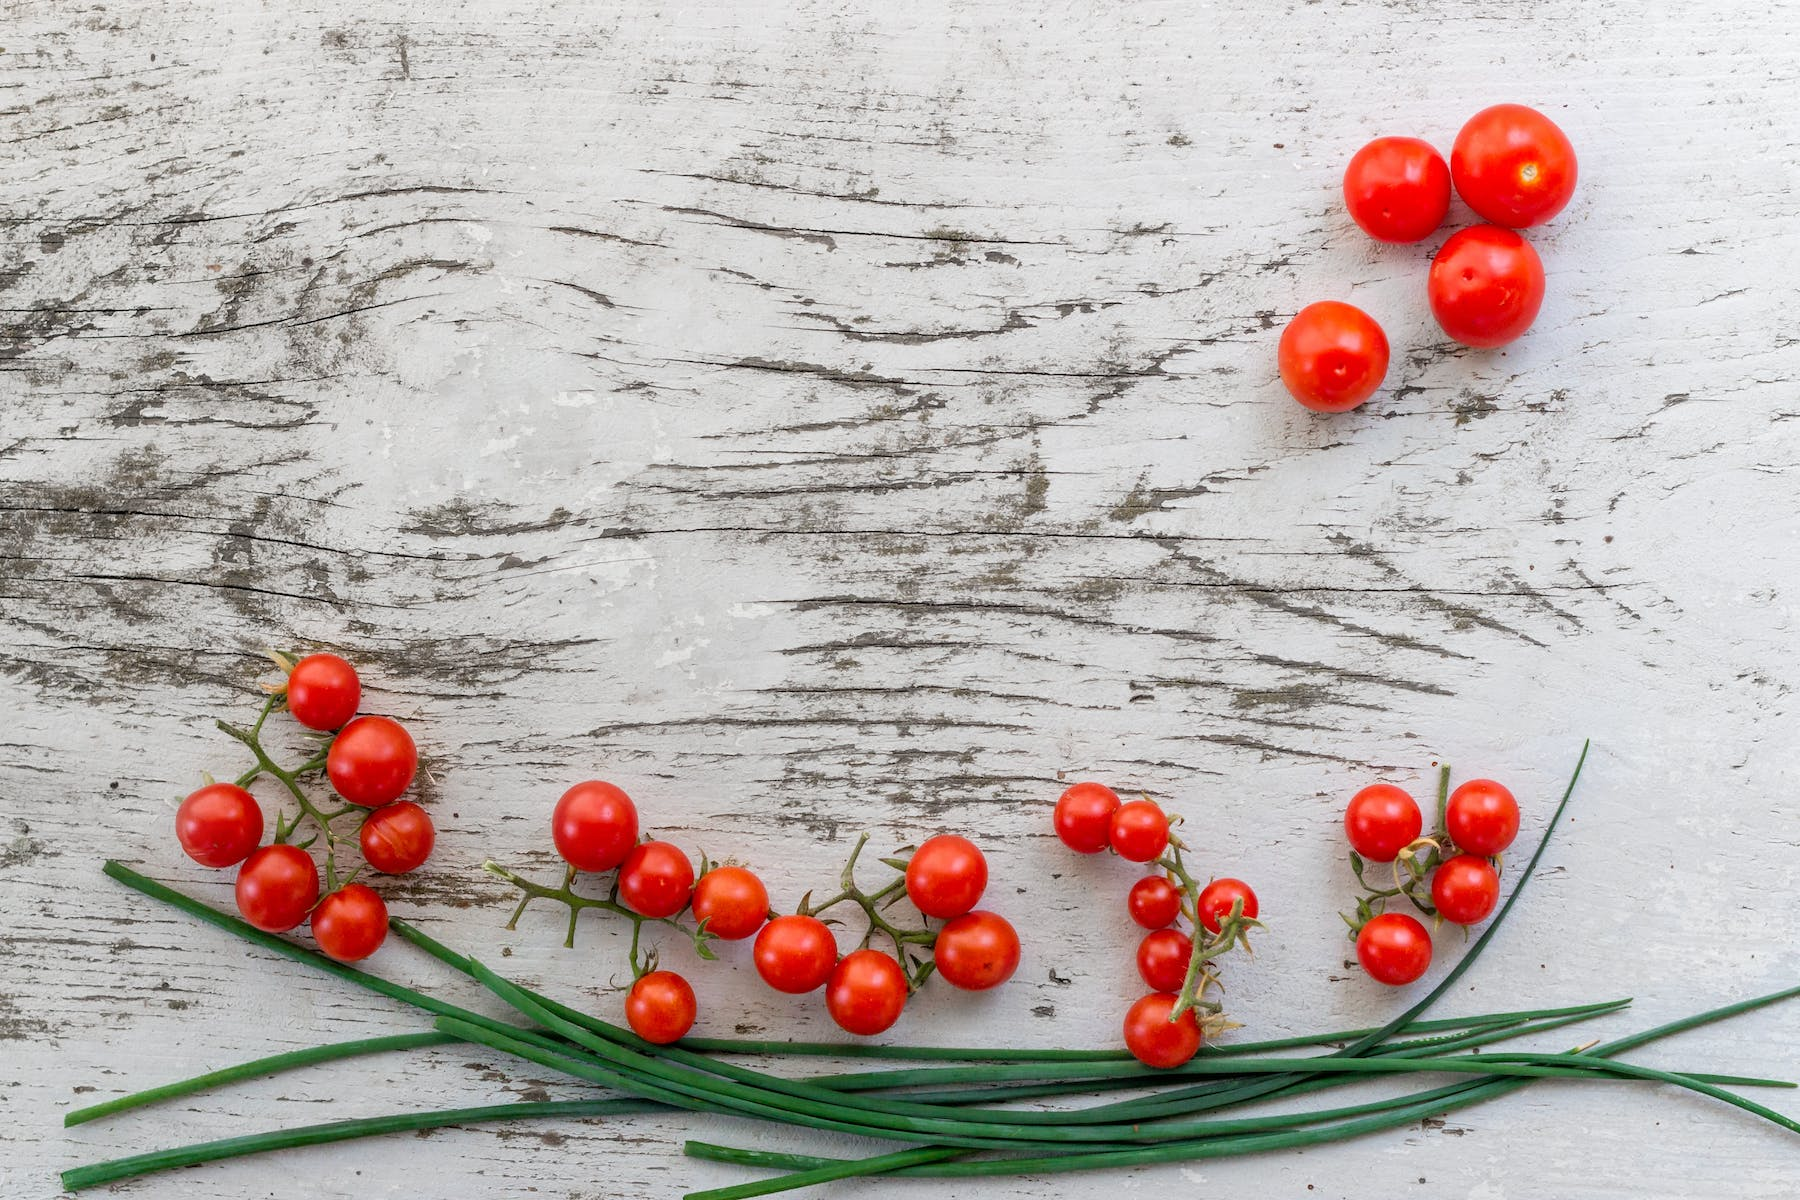 a close up of red berries lying on a wooden table